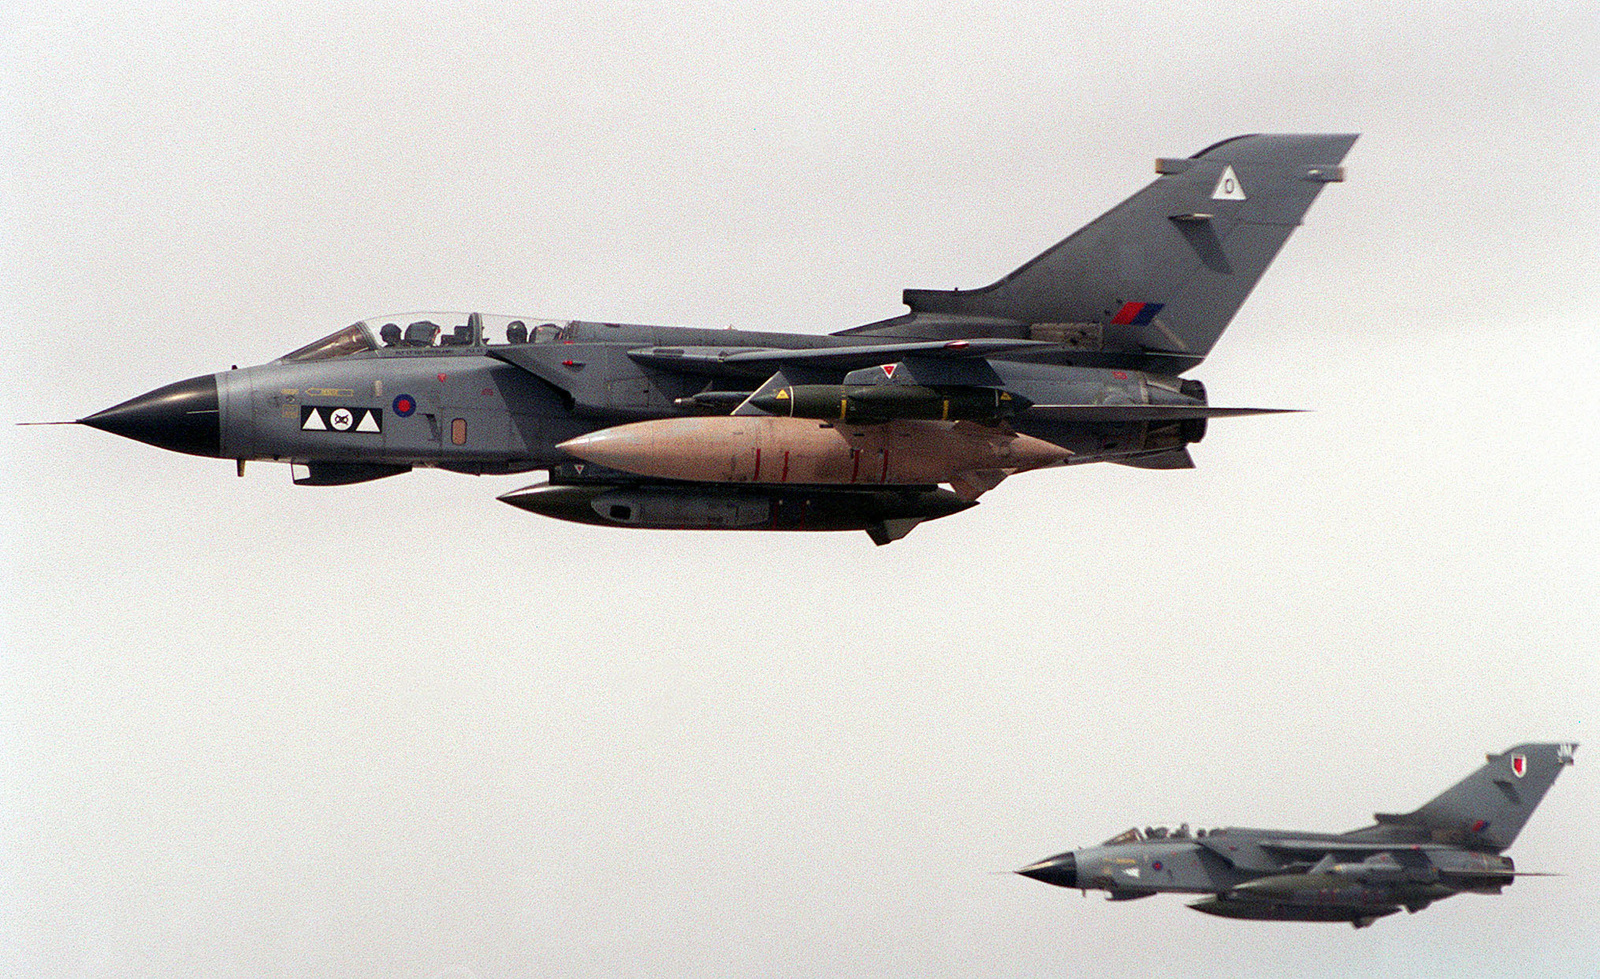 A pair of British Royal Air Force GR-1 Tornados cruise over Kuwait near the Iraqi border as part of the Southwest Asia build-up